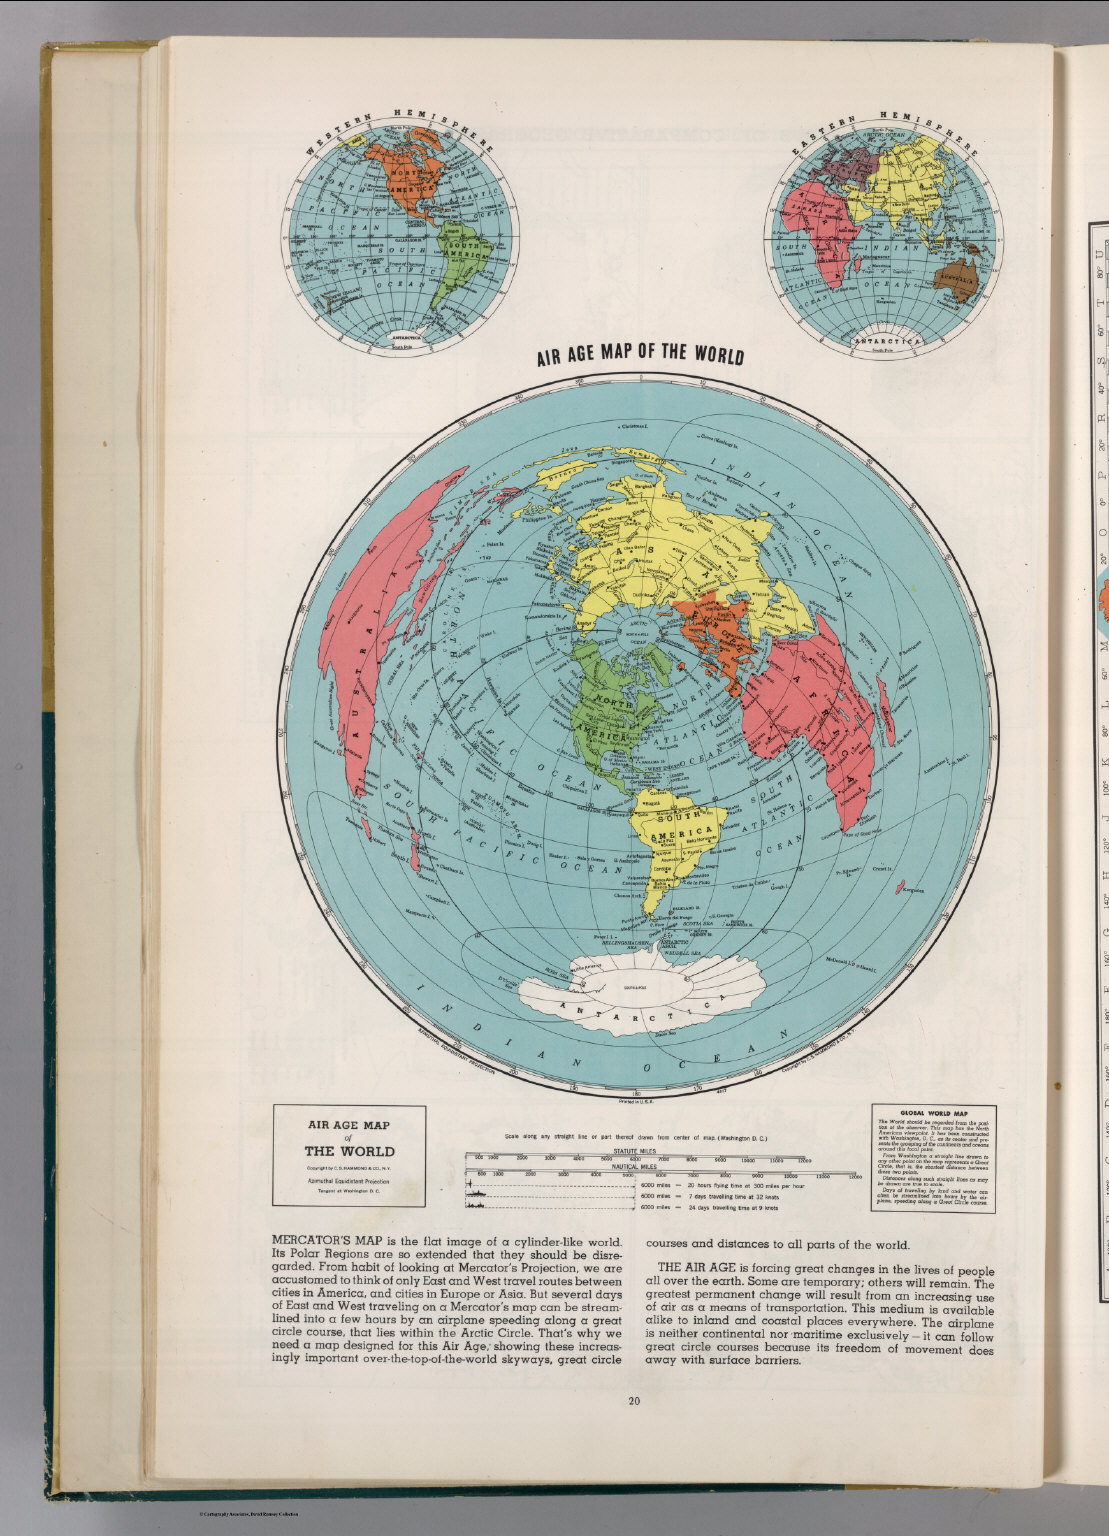 Air Map Of The World.Air Age Map Of The World David Rumsey Historical Map Collection